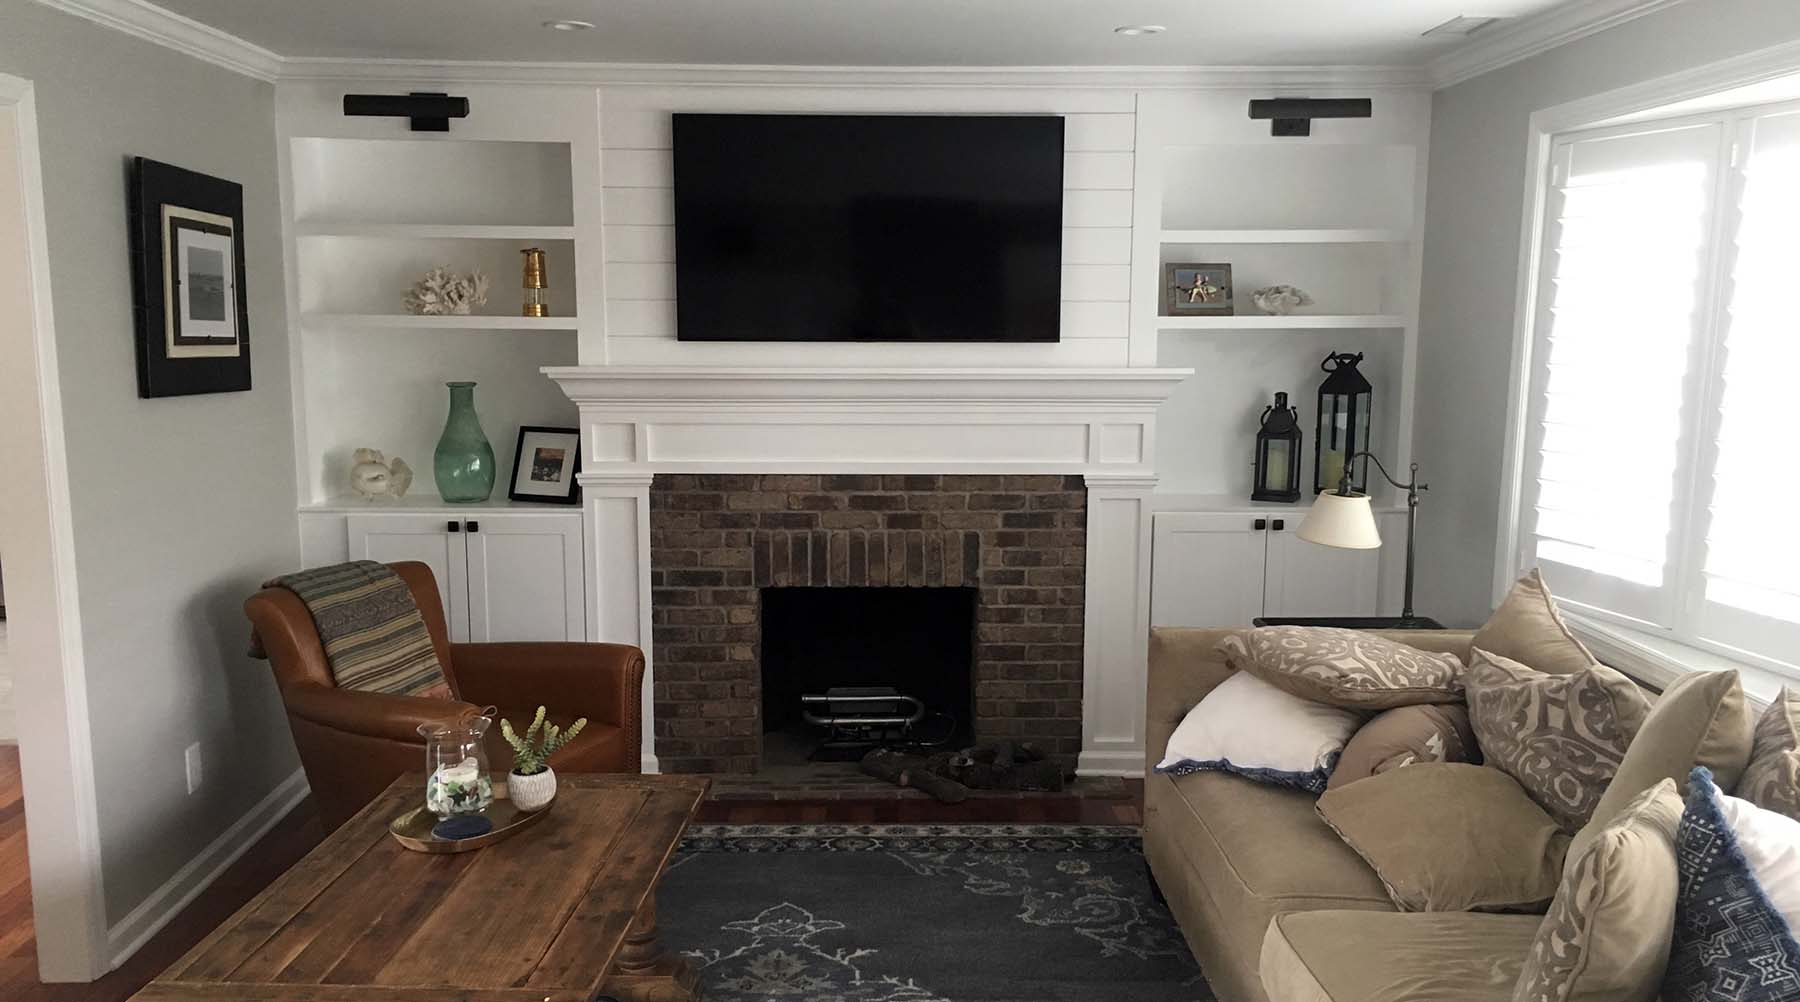 what are brad nails used for beautiful built ins around a brick fireplace